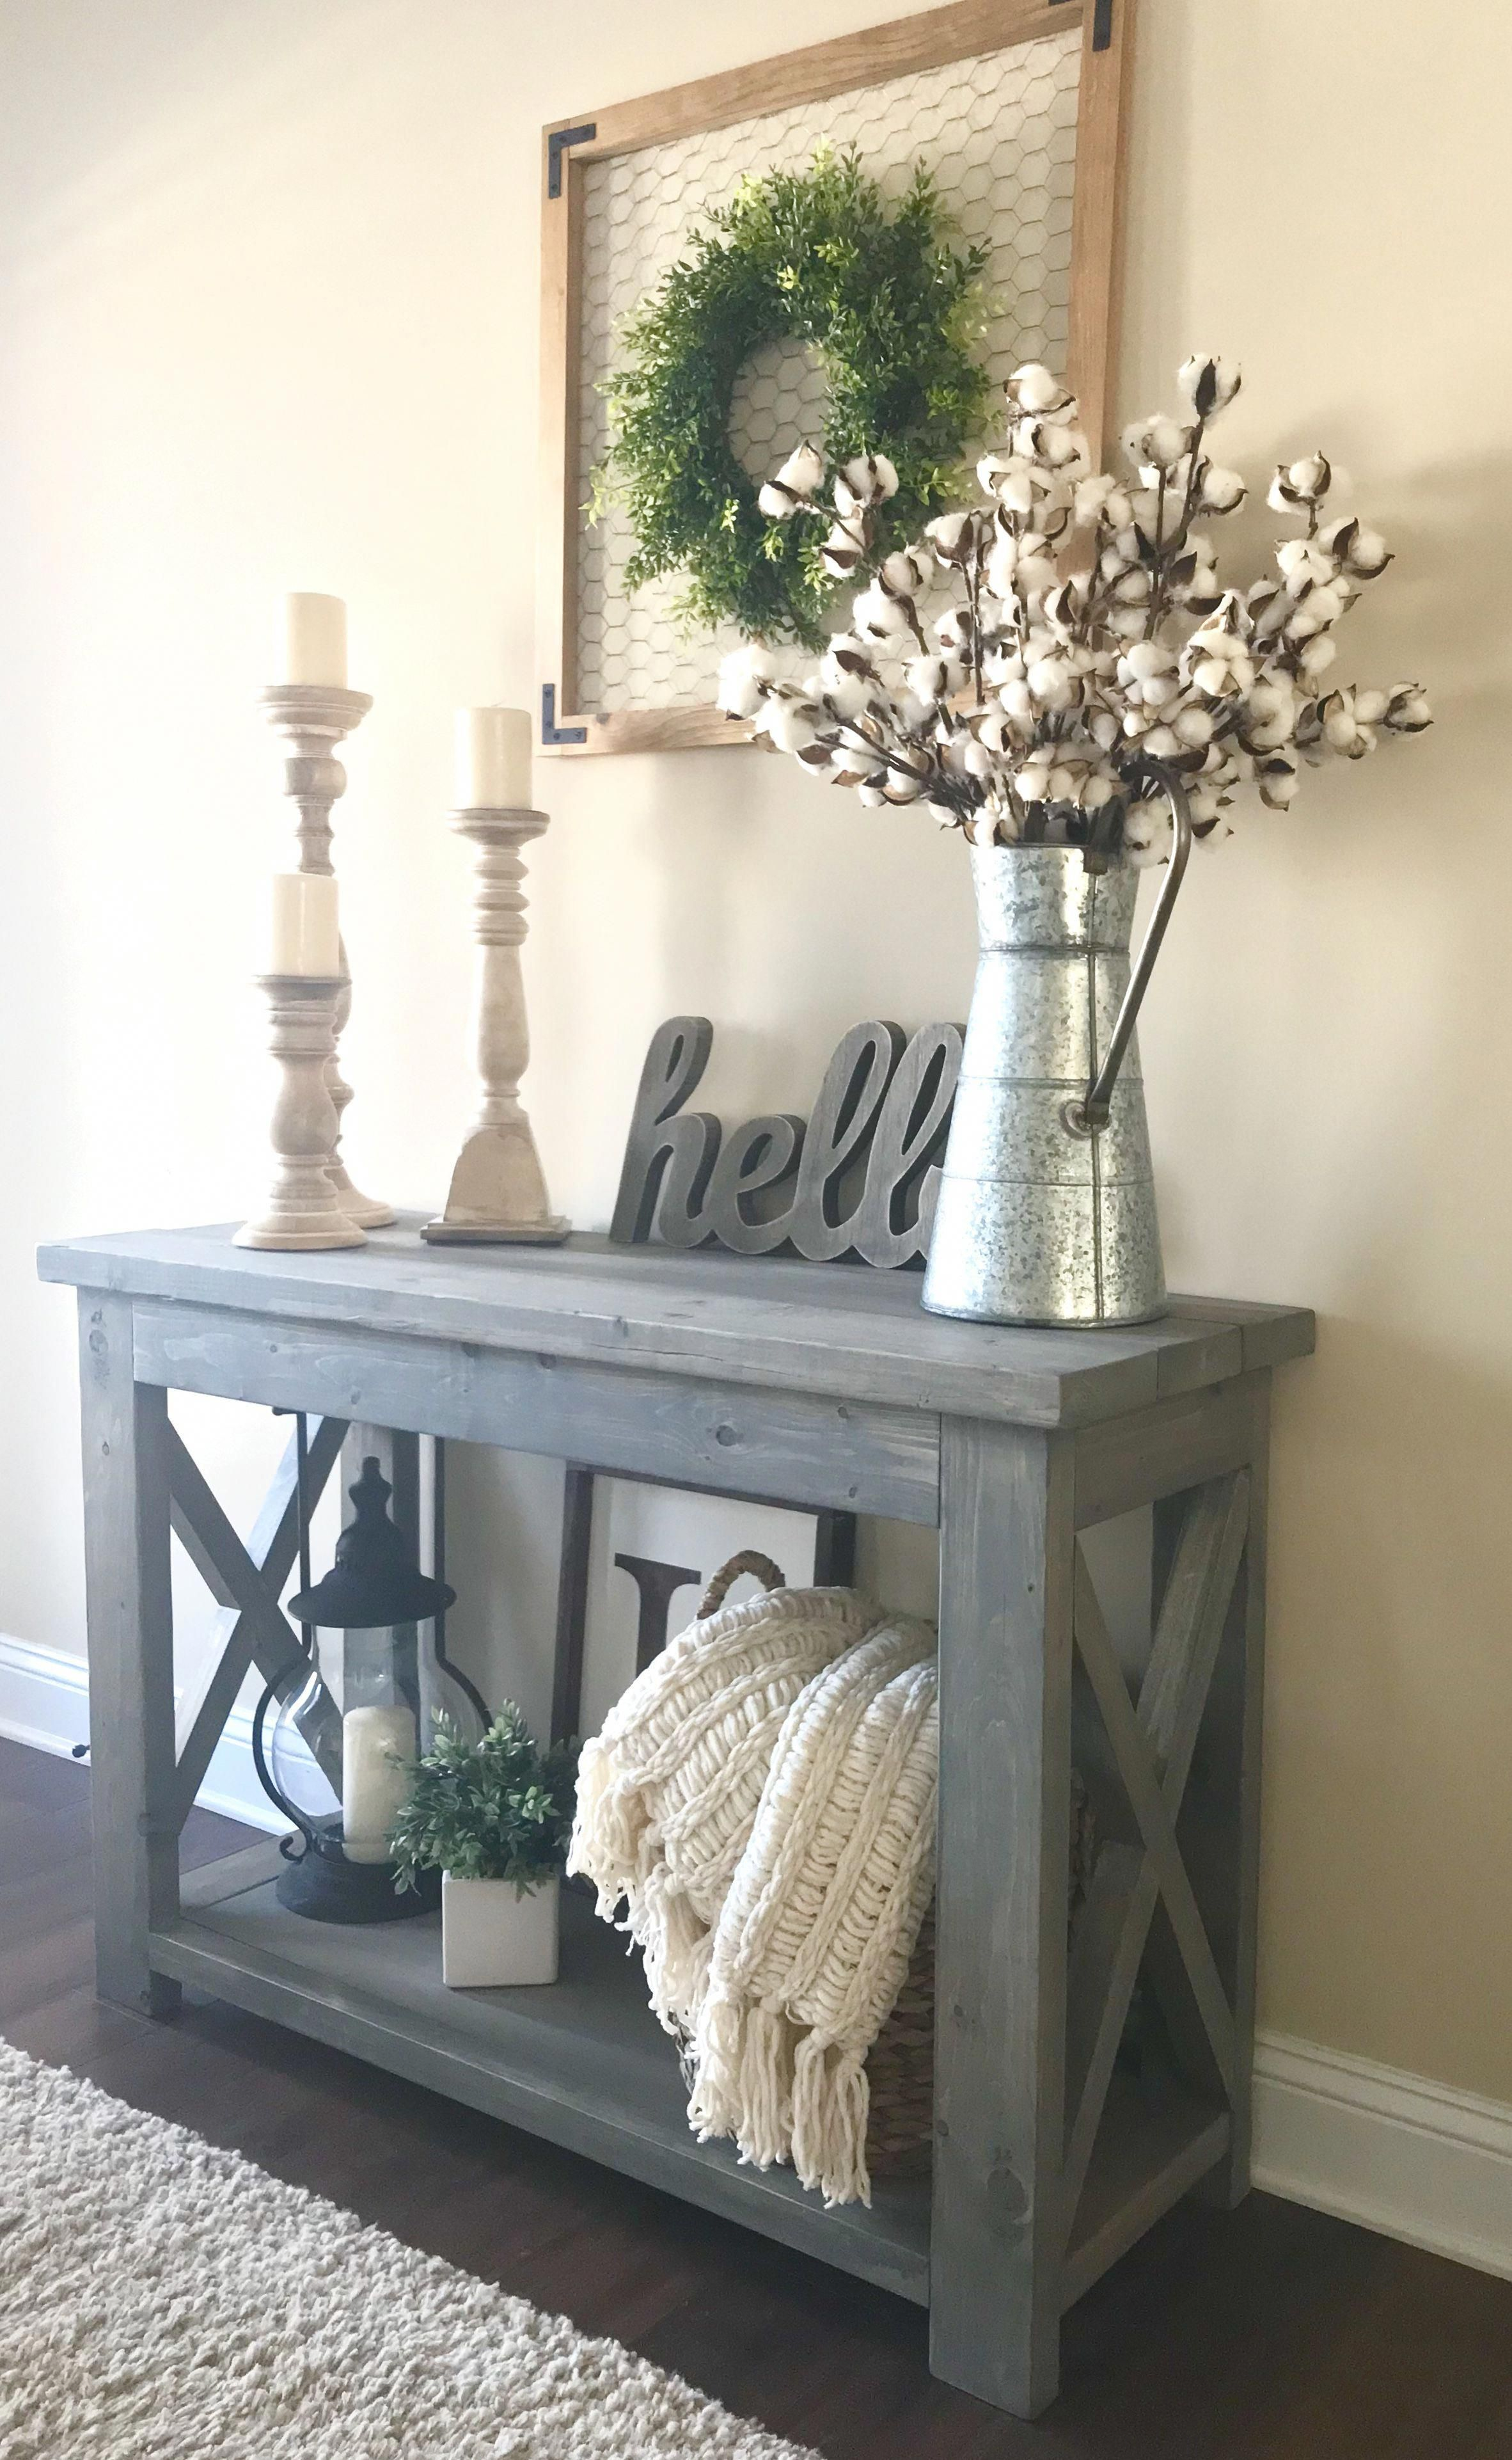 20 Beautiful Entry Table Decor Ideas To Give Some Inspiration On